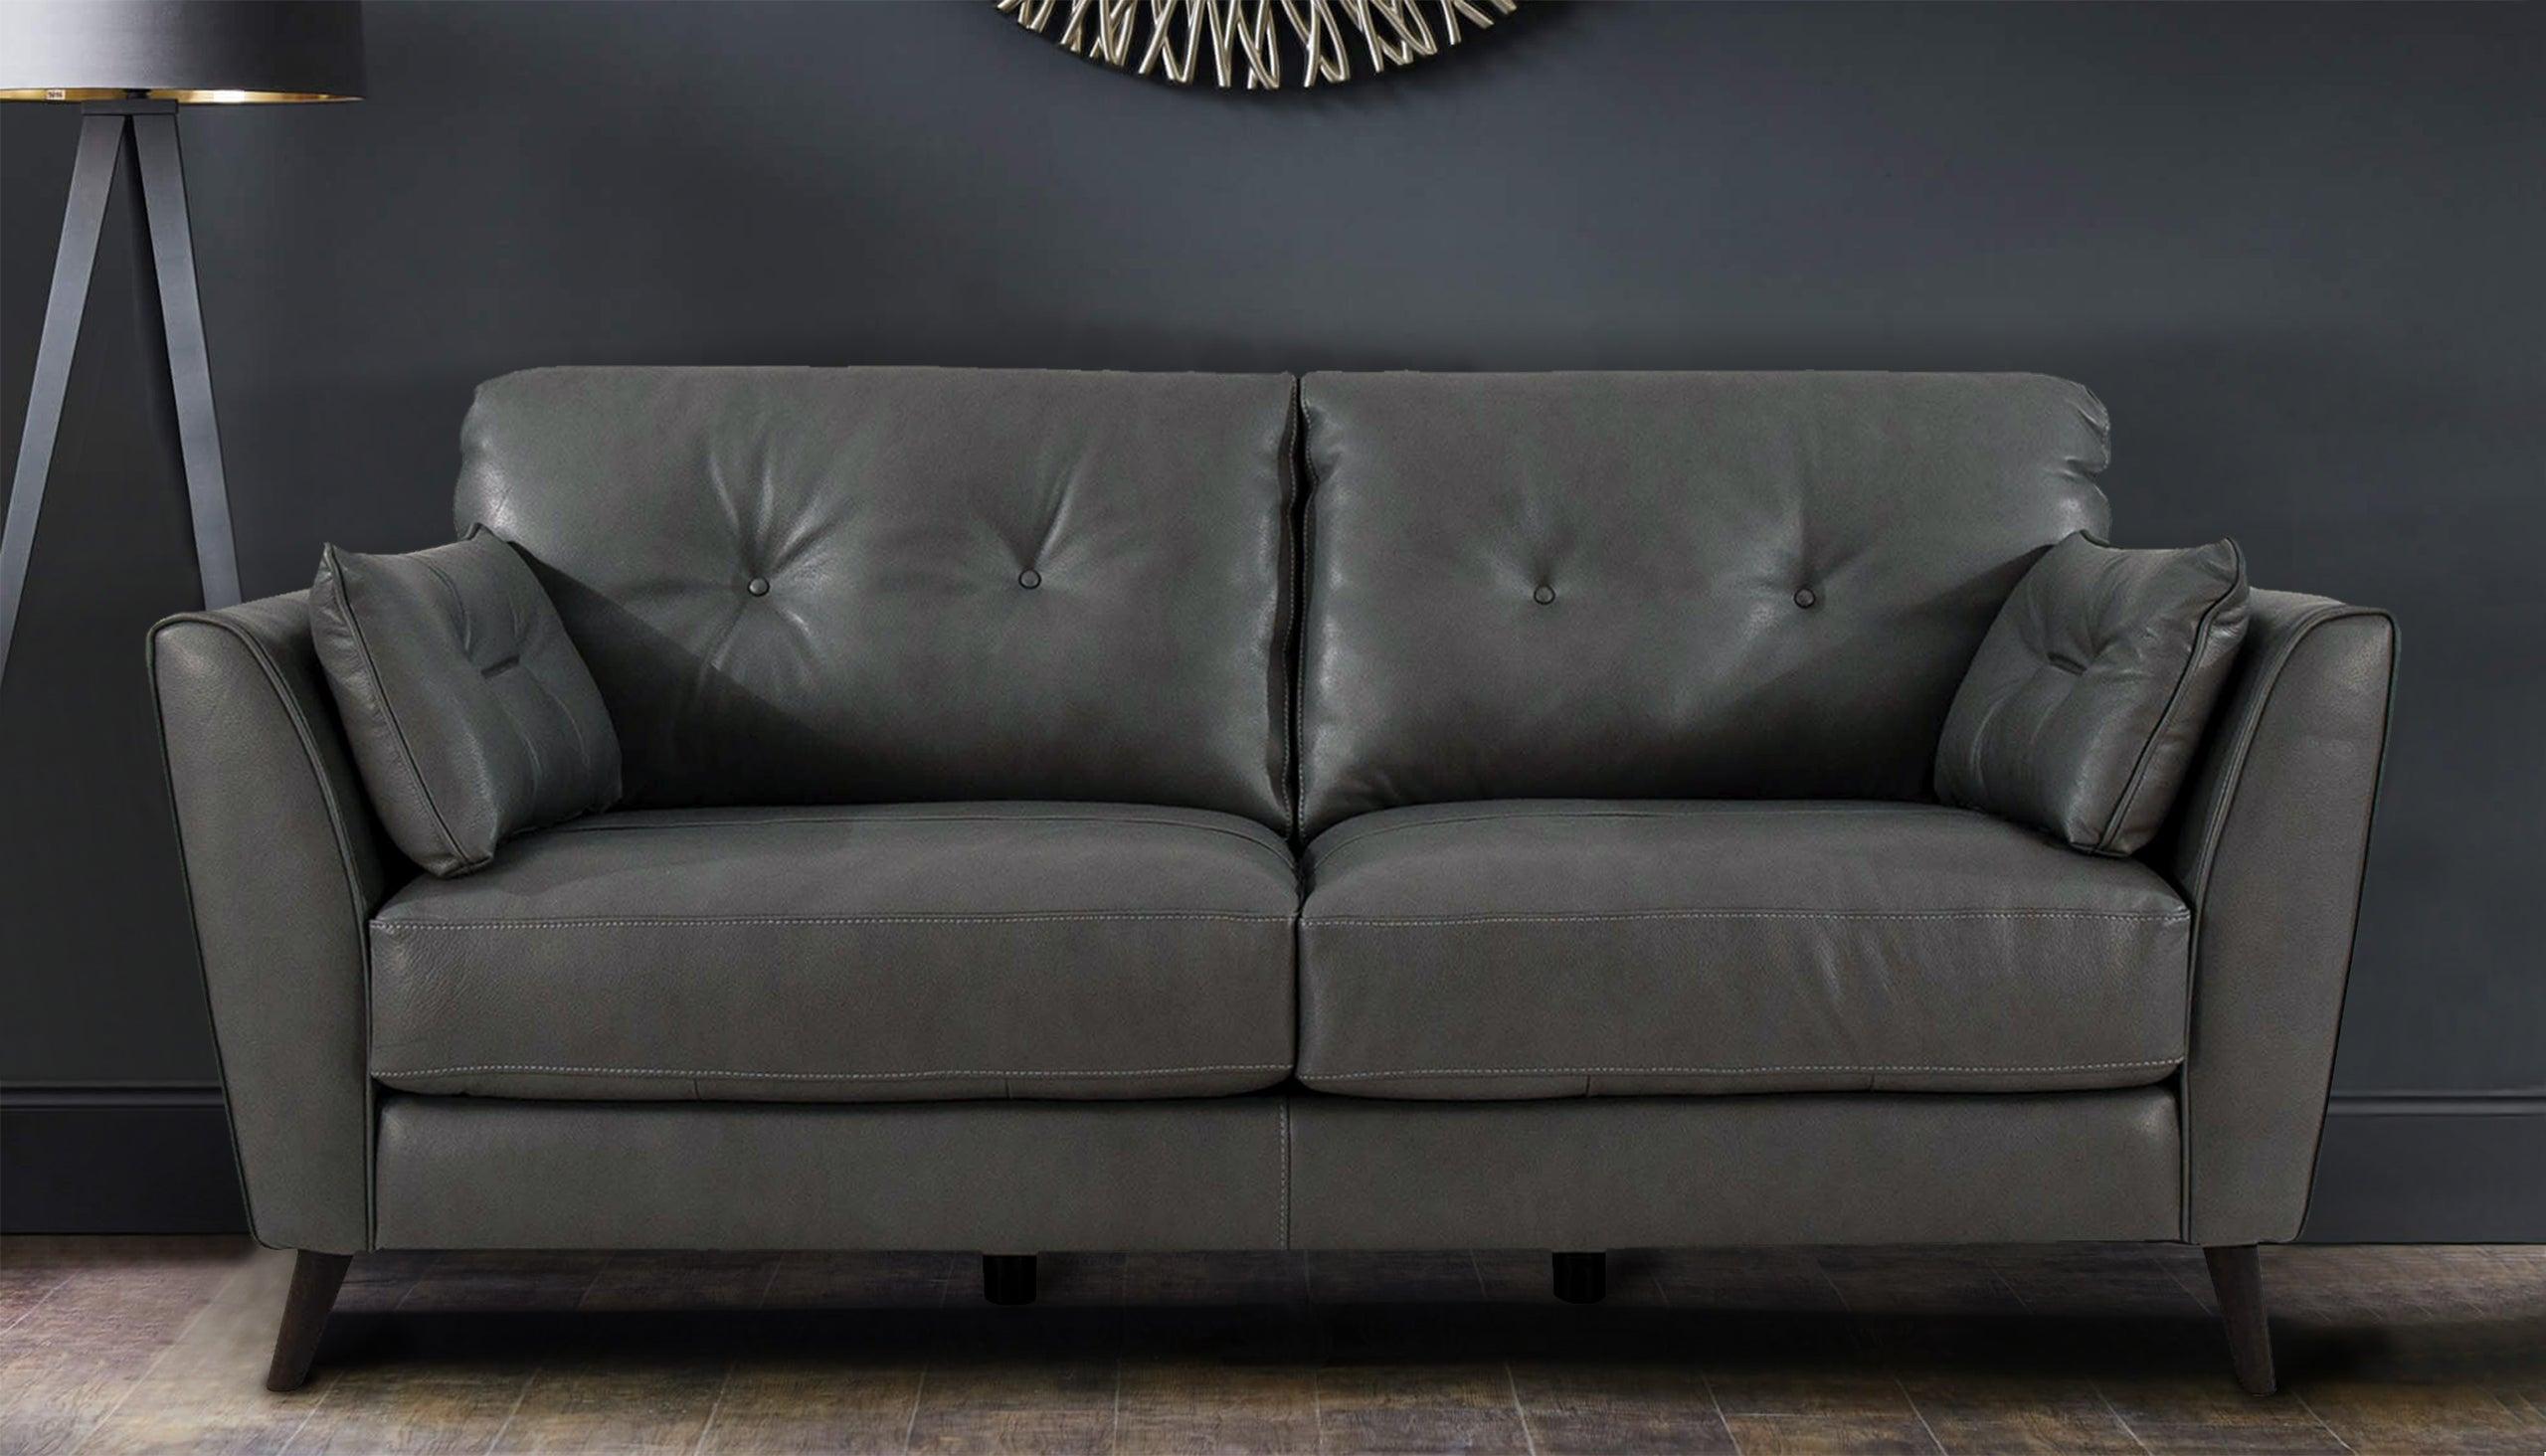 Bardot 2 Seater Sofa